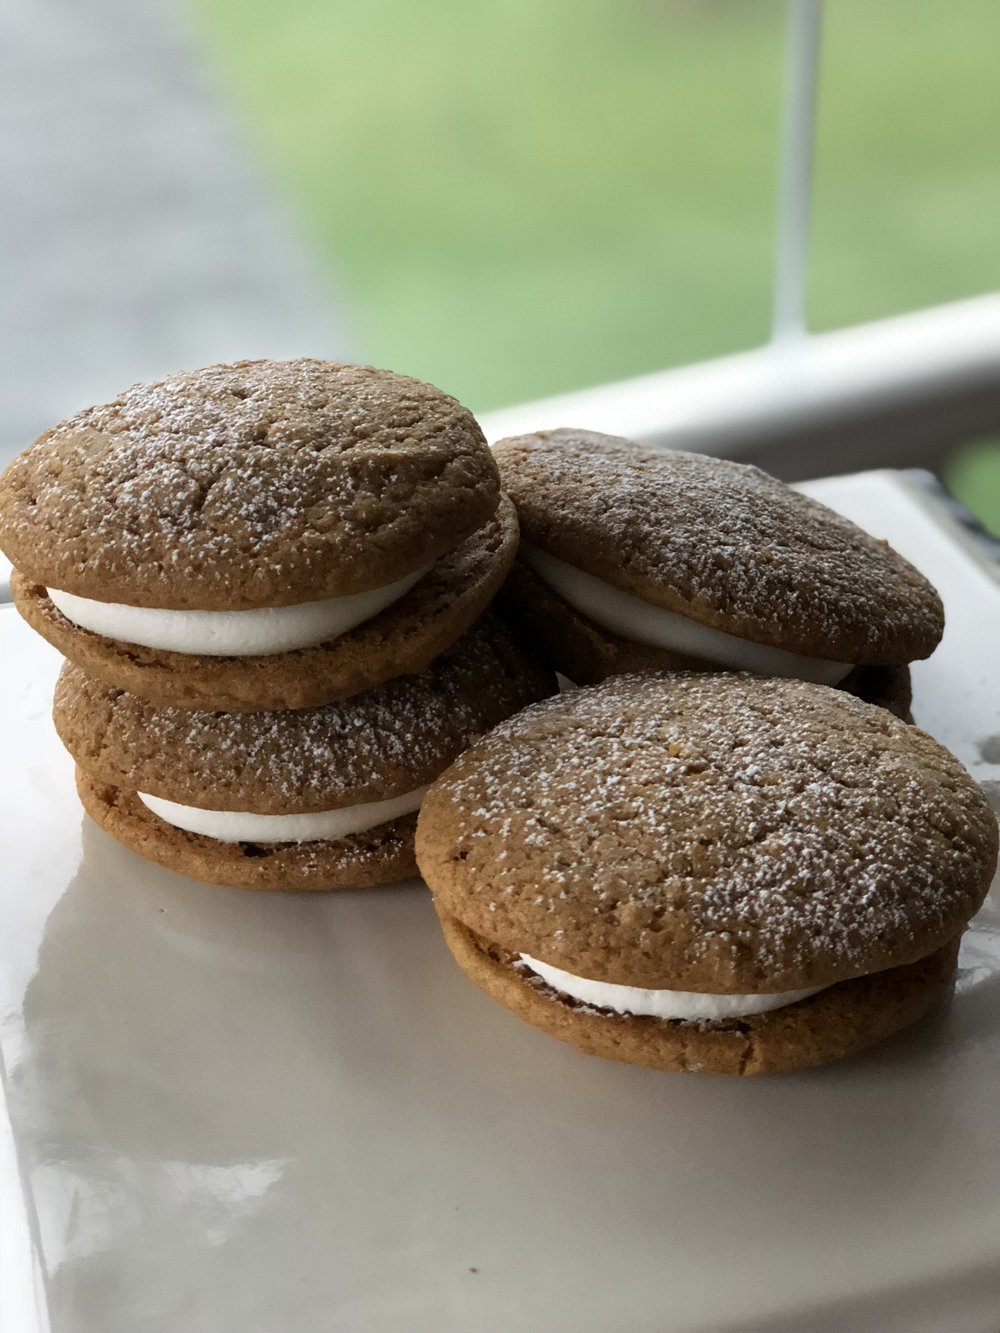 Seasonal Gluten & Dairy Free Pumpkin Whoopie Pies with DF Cream Cheese Filling  $30 per dozen  $15.00 per 1/2 dozen